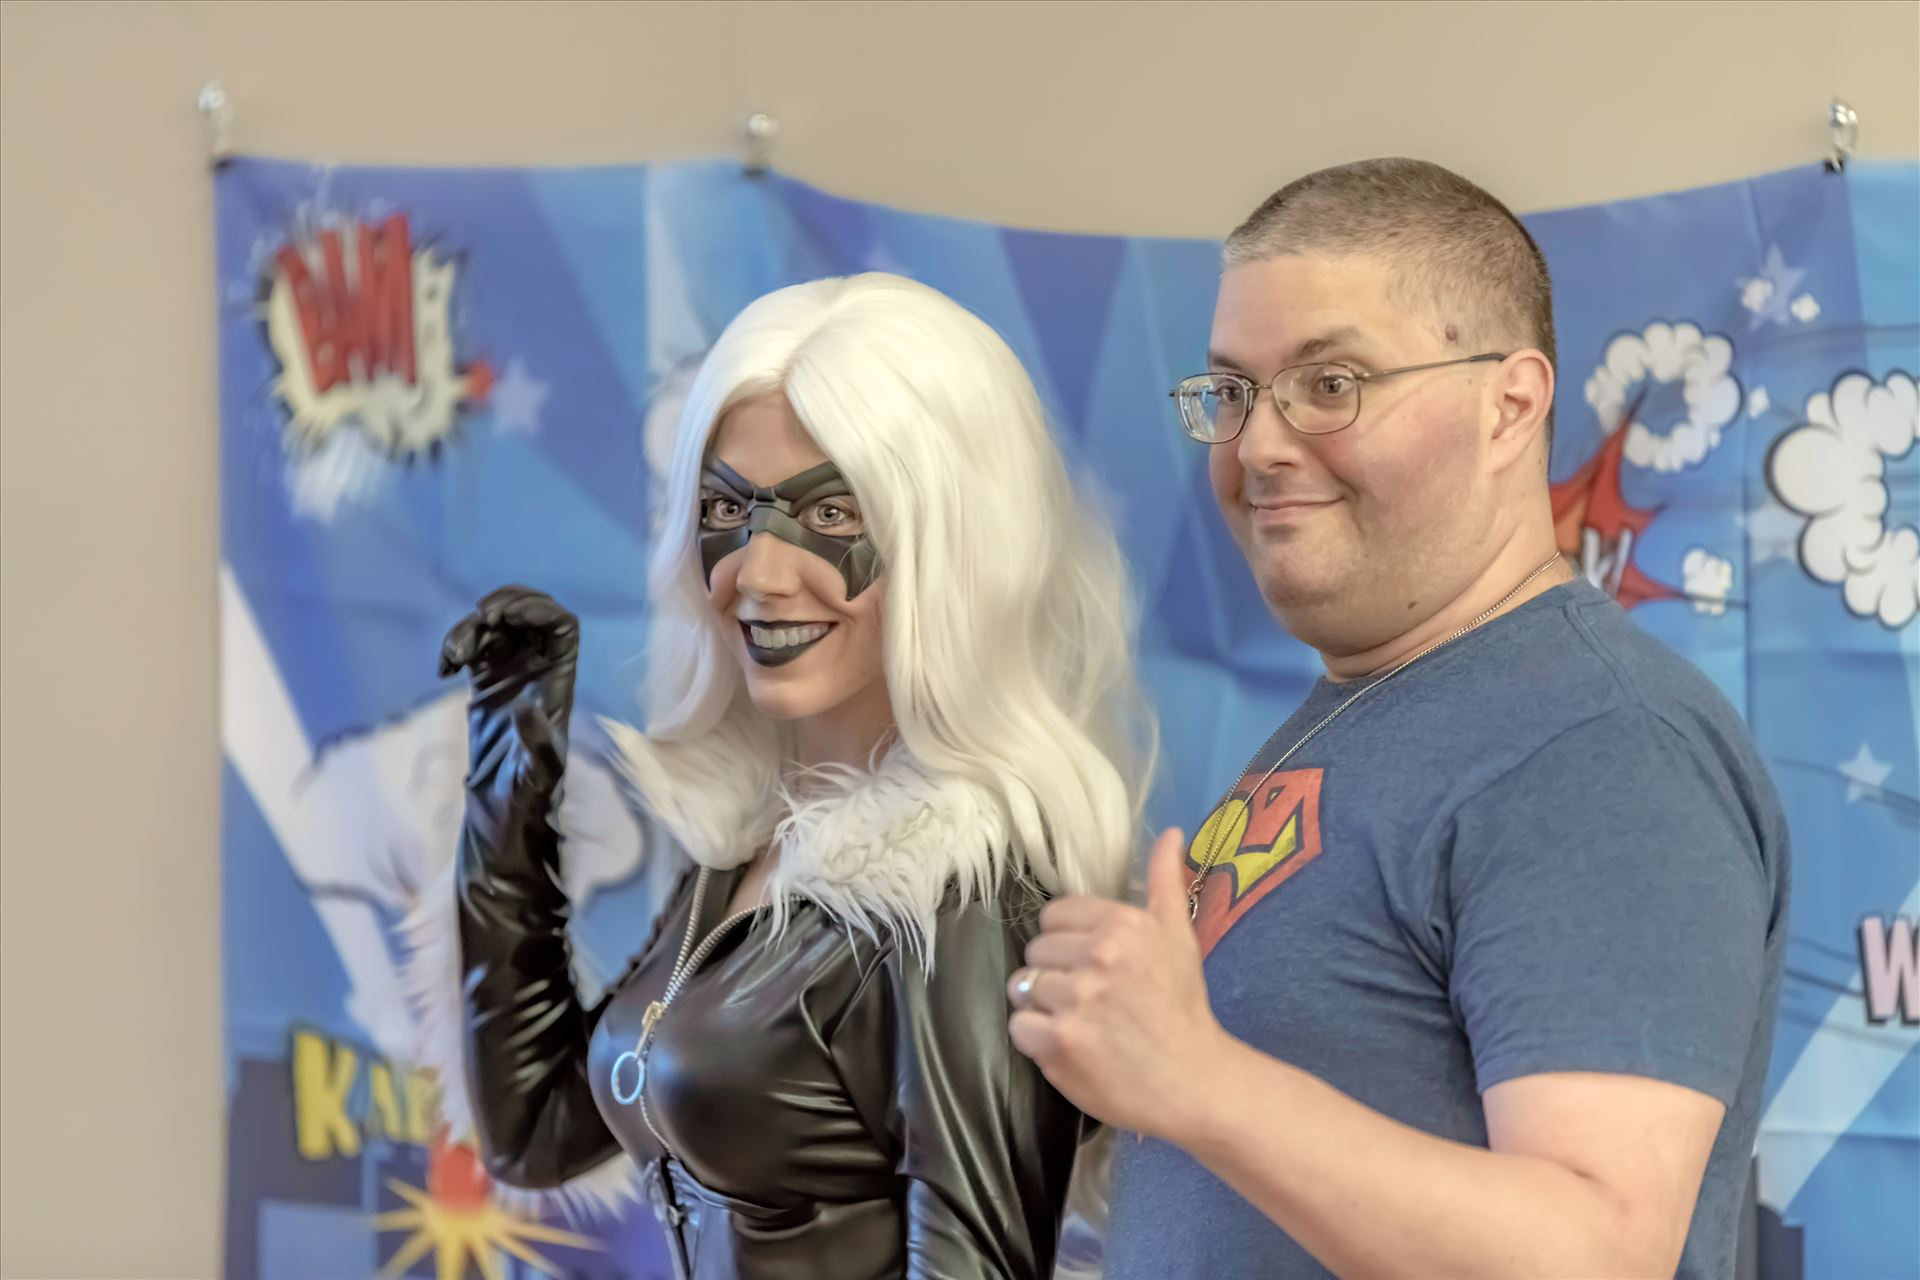 Cosplay - MARVEL vs DC the superheroes meet at Bay County Public Library Saturday, July 28th 2018